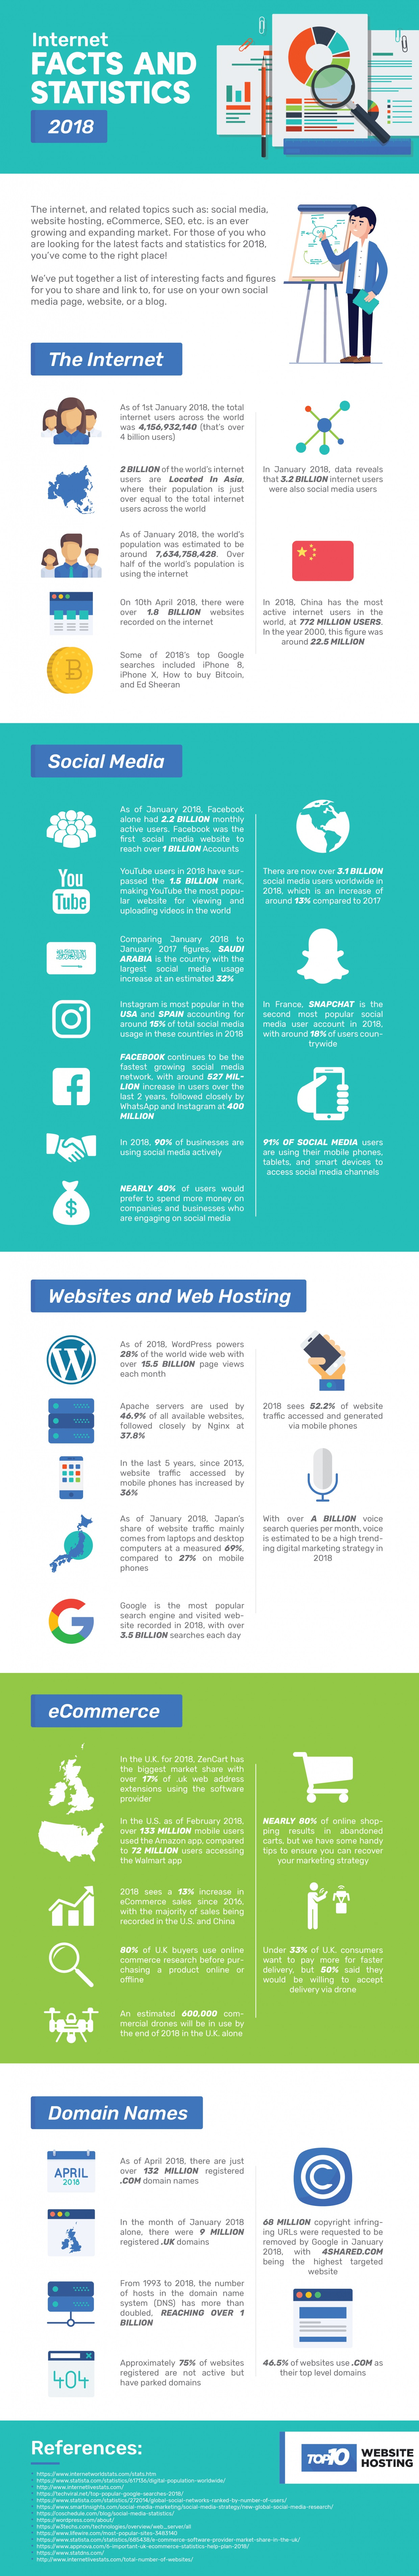 Incredible Stats About the Internet